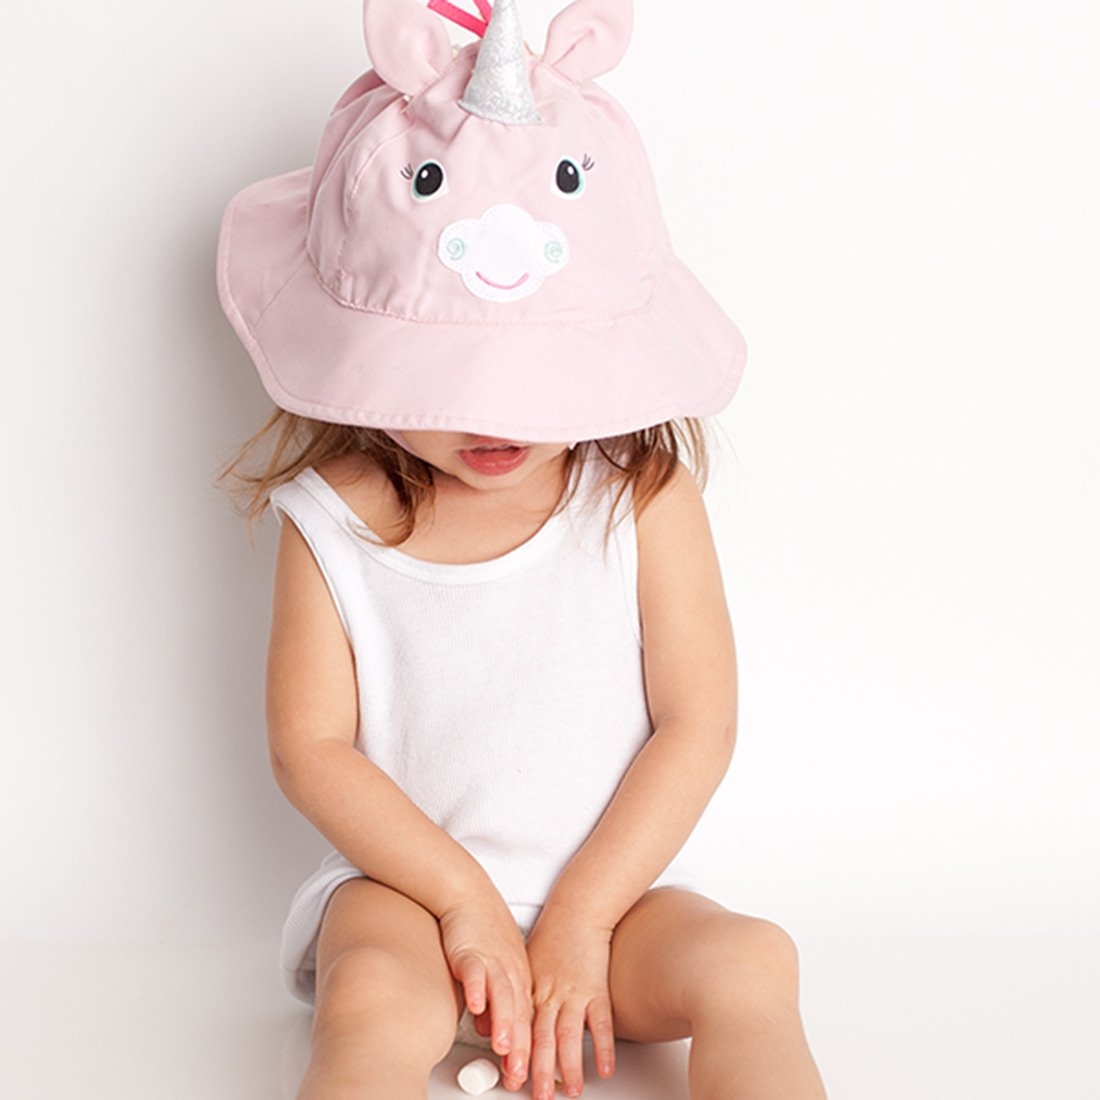 ZOOCCHINI UPF50+ Baby Sun Hat - Allie the Alicorn